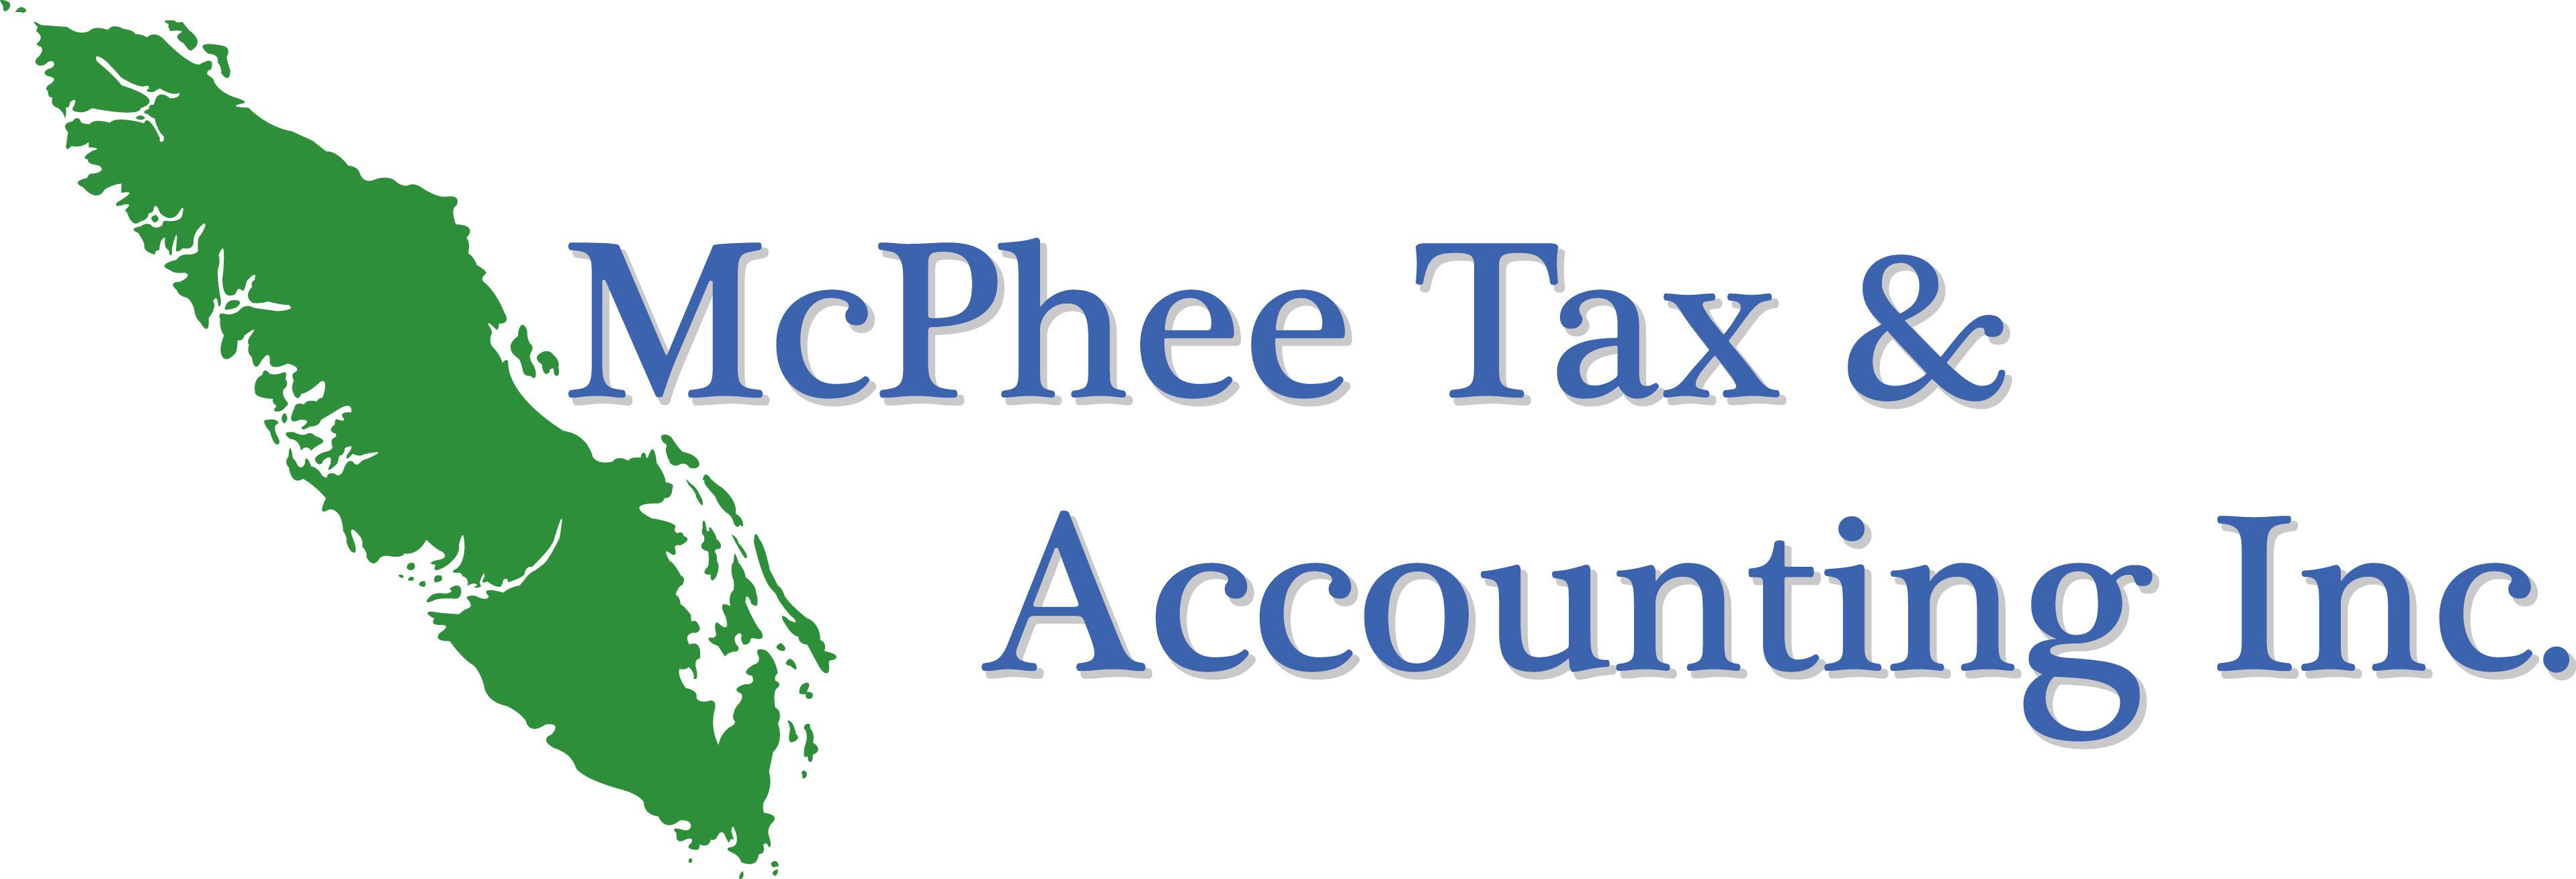 McPhee Tax & Accounting Inc. (formerly Van Isle Accounting)